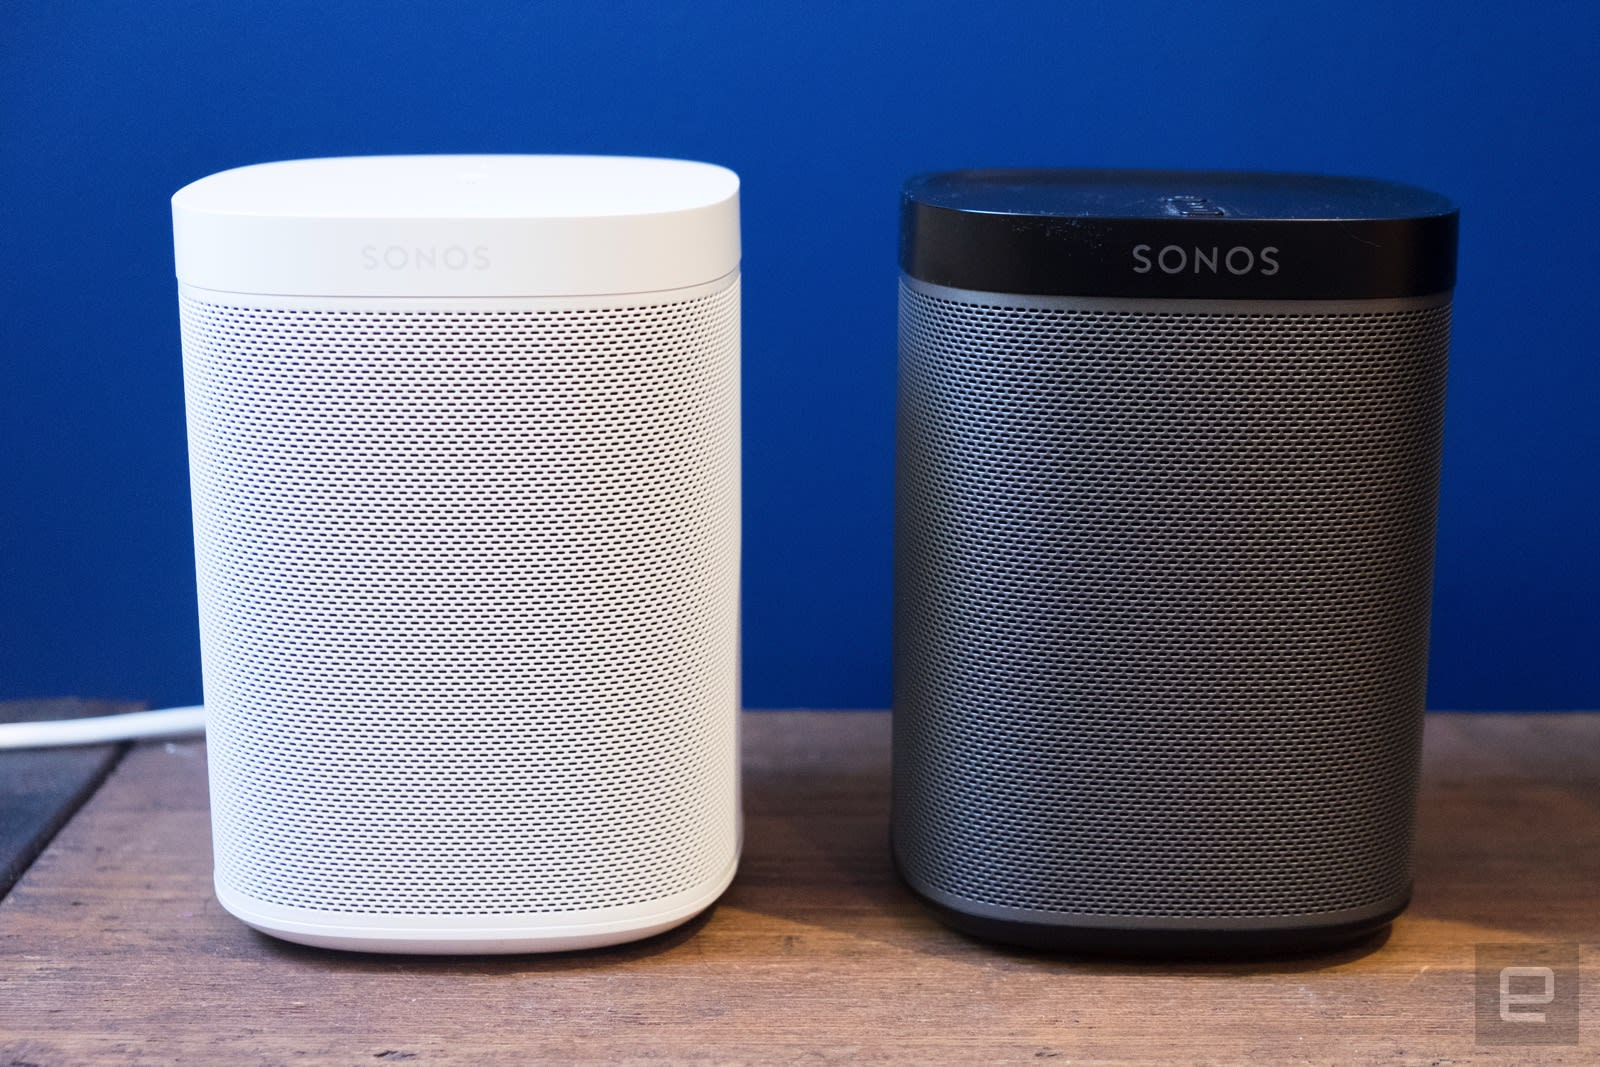 If you've used the $199 Play:1 speaker, you'll feel right at home with the Sonos One. At a glance, it features the same rounded rectangular shape as the ...